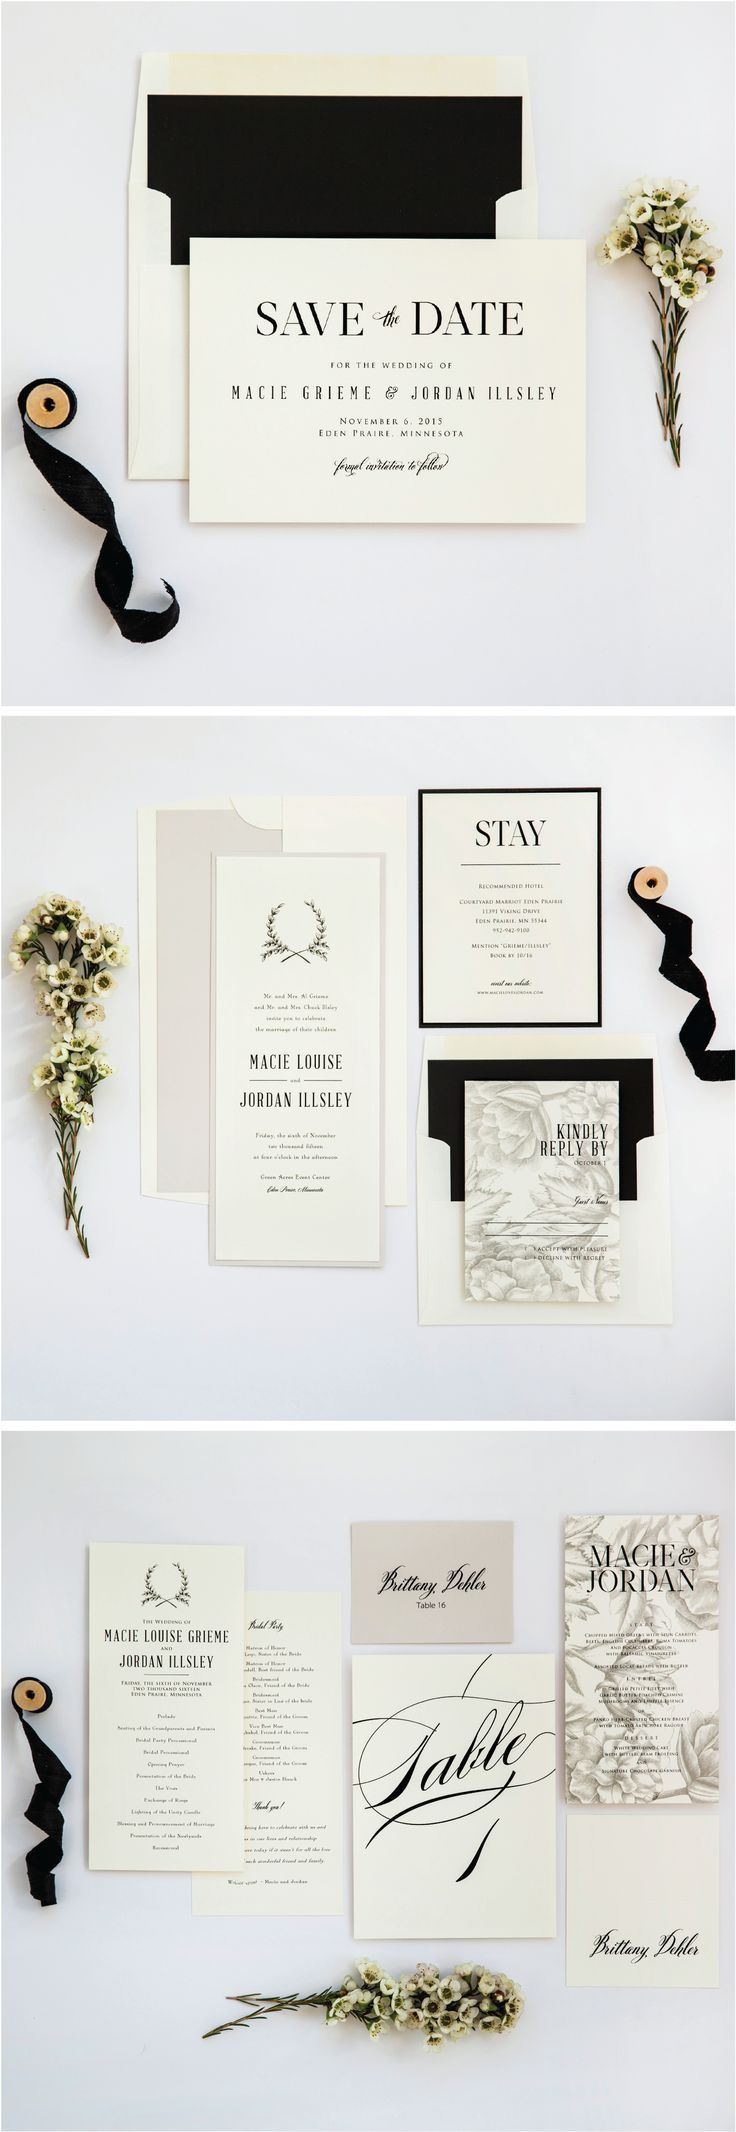 wedding invitation photo%0A Ivory  Stone  u     Black Neutral Rustic Wedding Invitation Suite